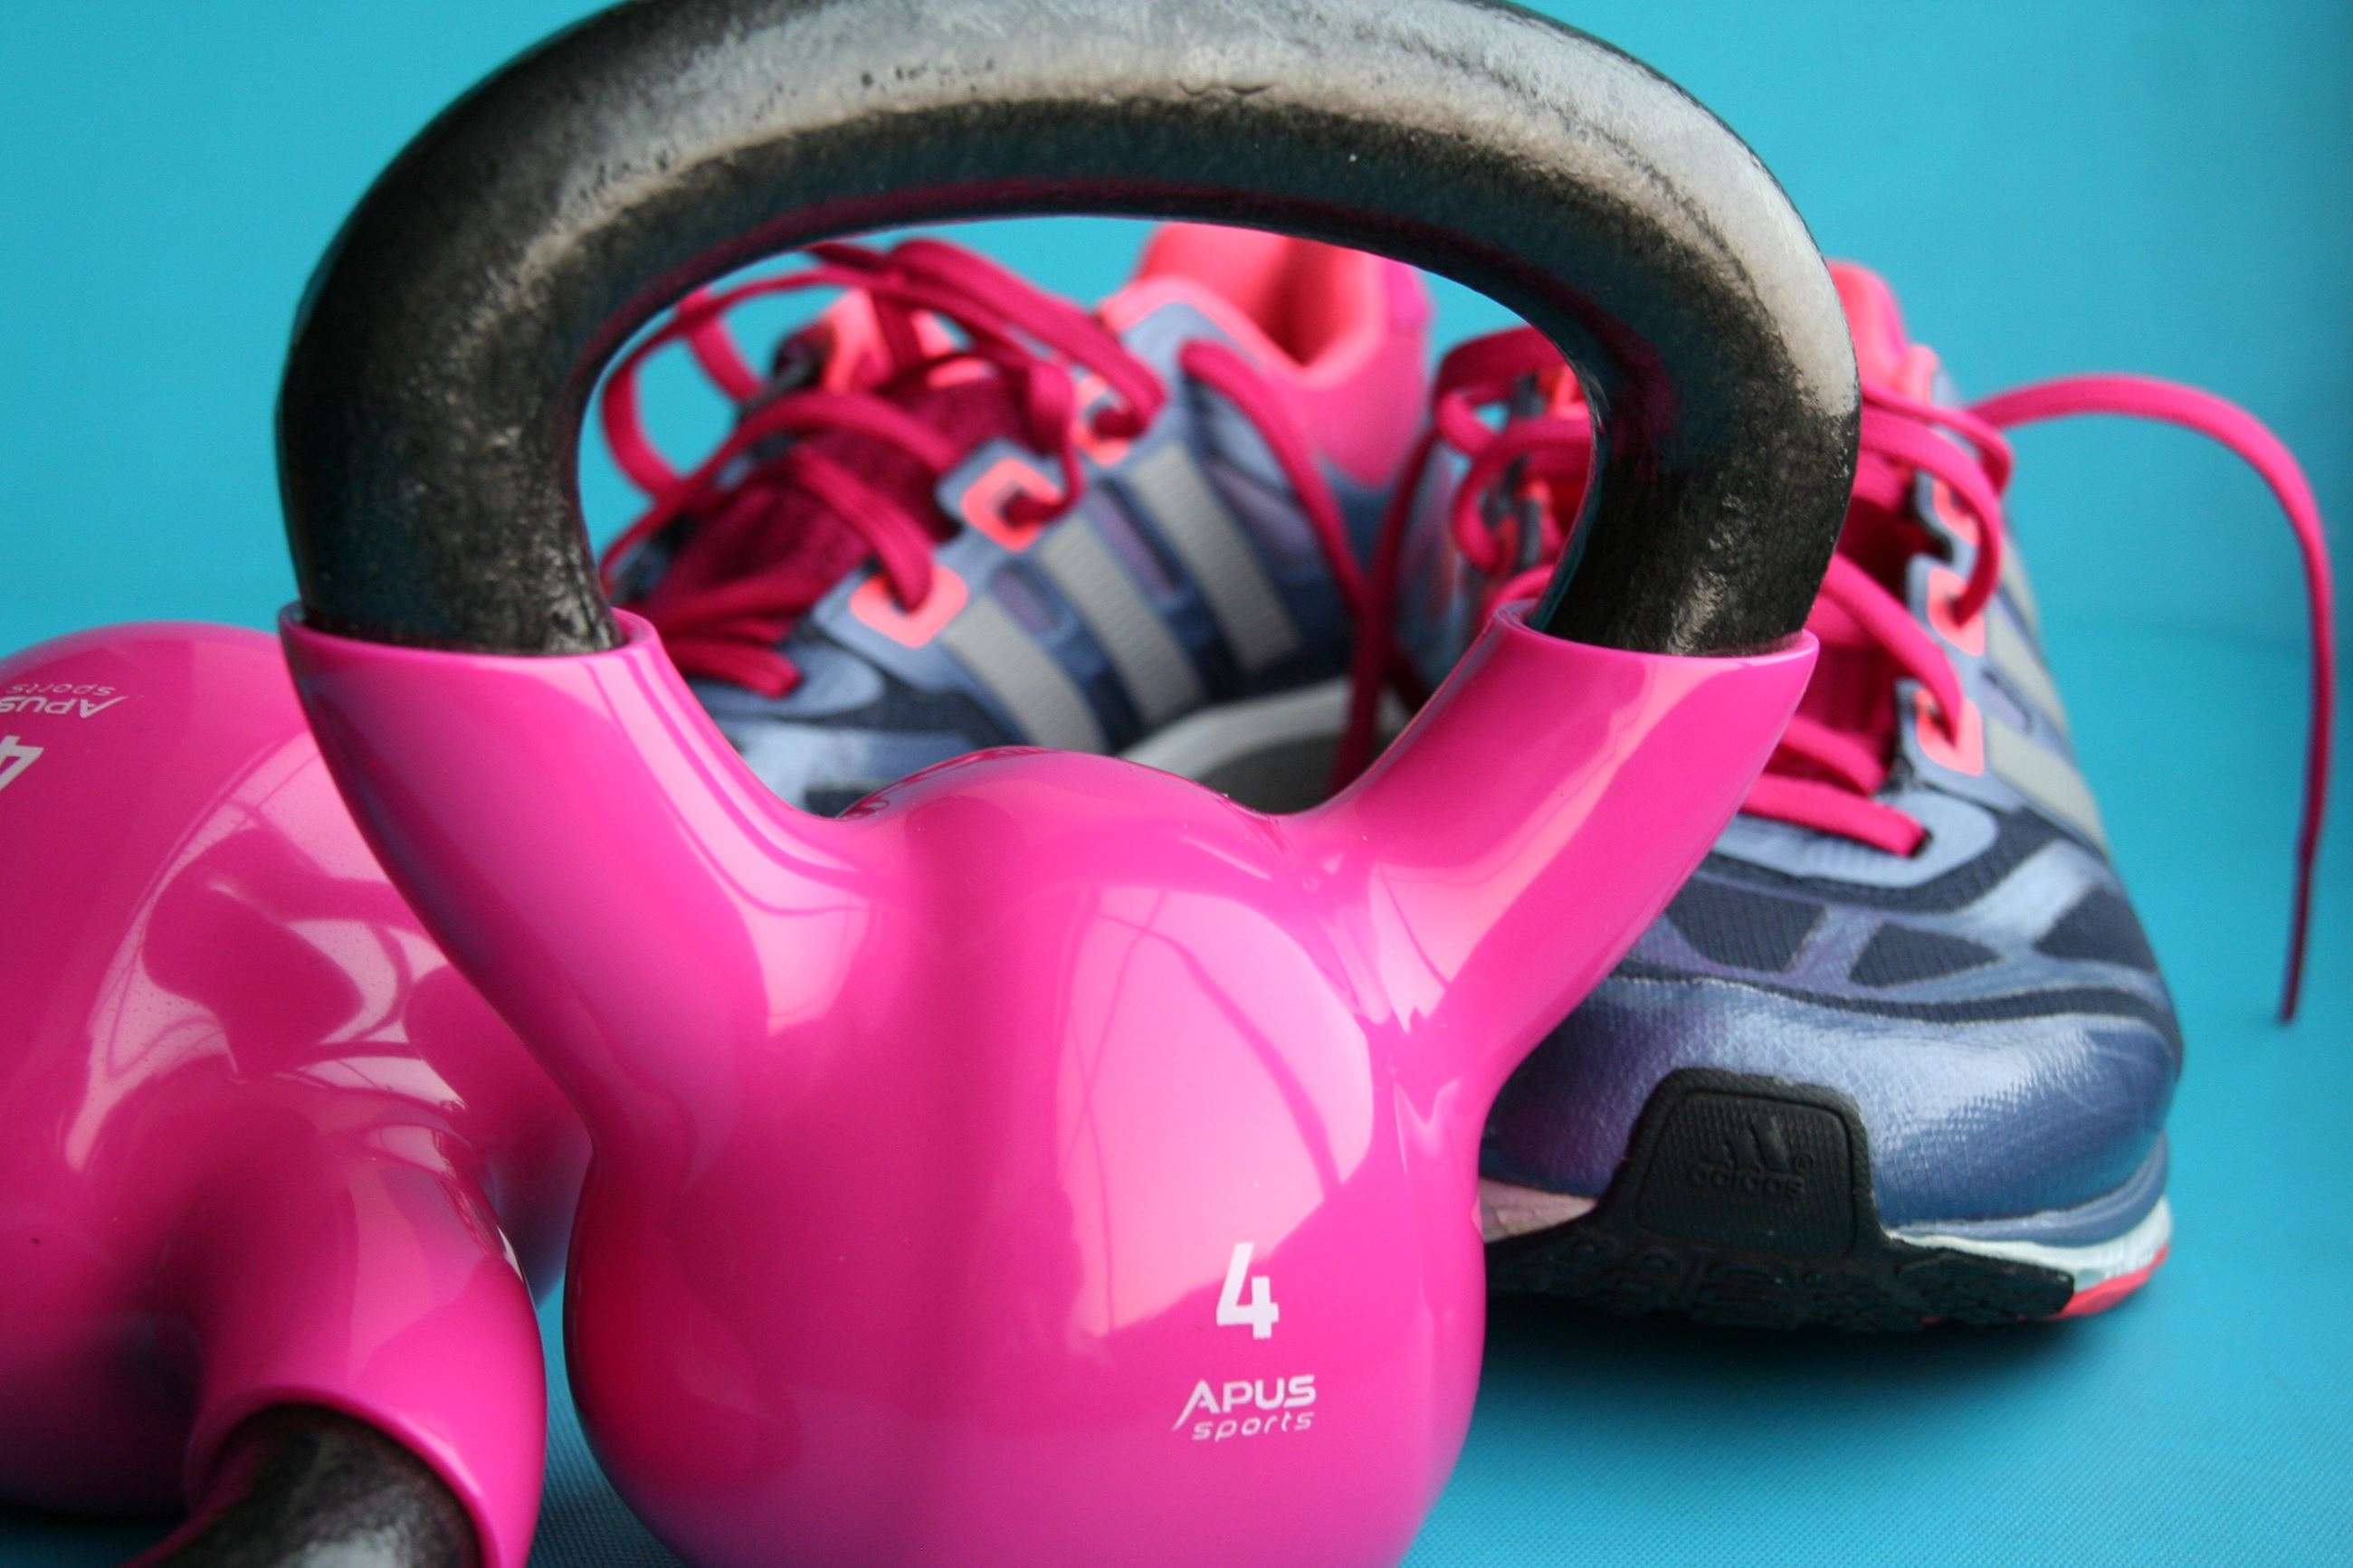 Fitness - Kettle Bell and Shoes